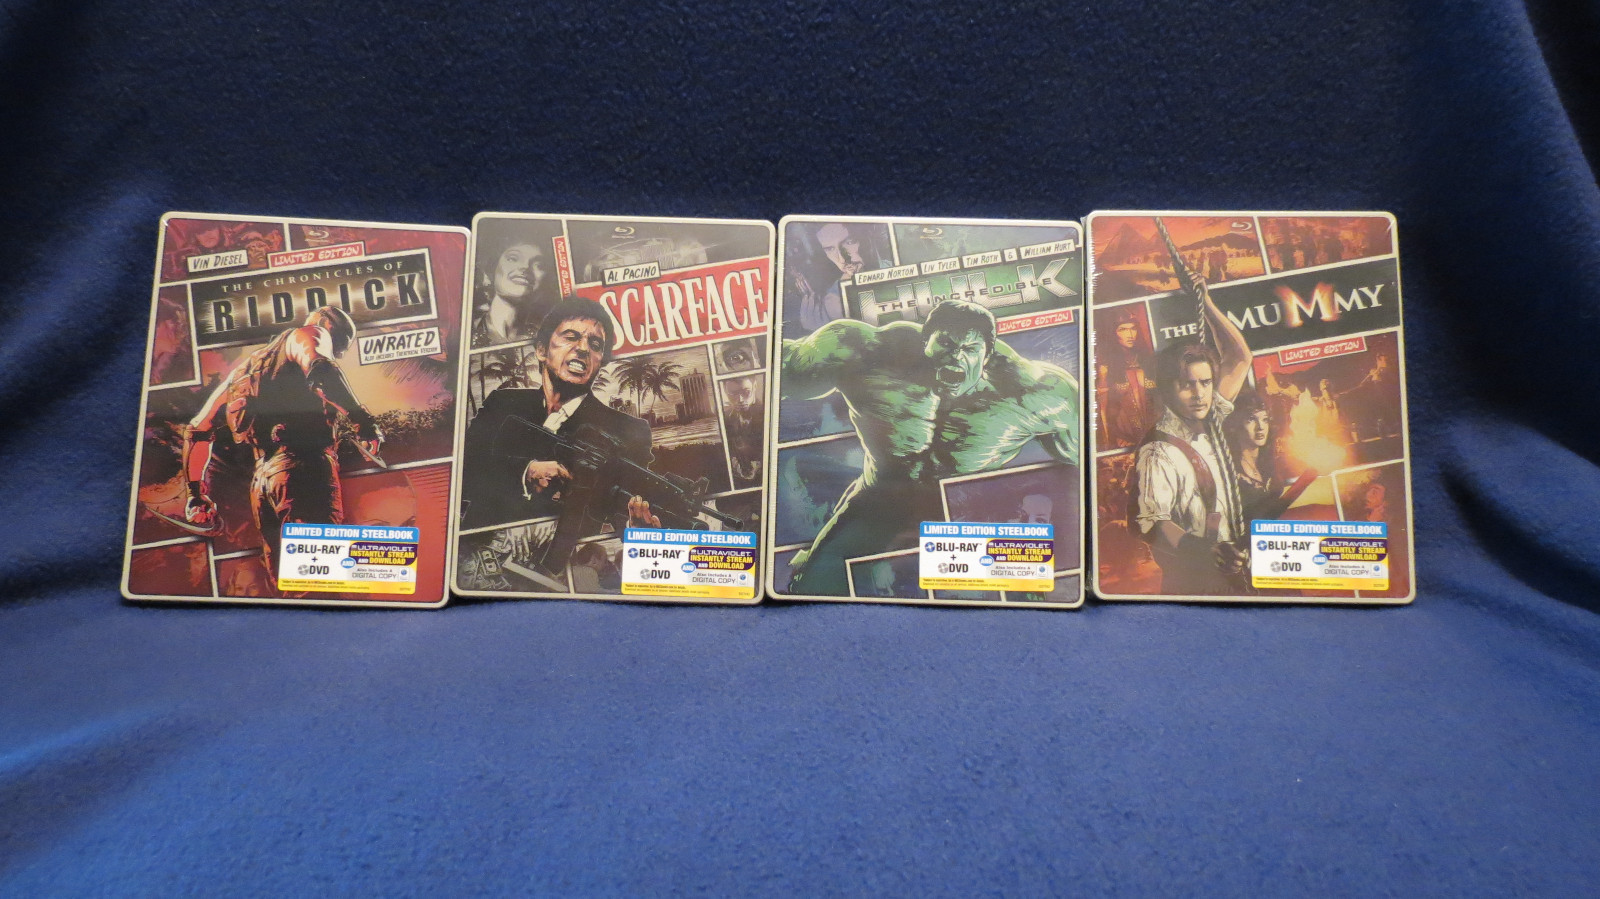 Primary image for  Steel Book Blu Ray Movies-The Mummy, Incredible Hulk, Riddick, Scarface